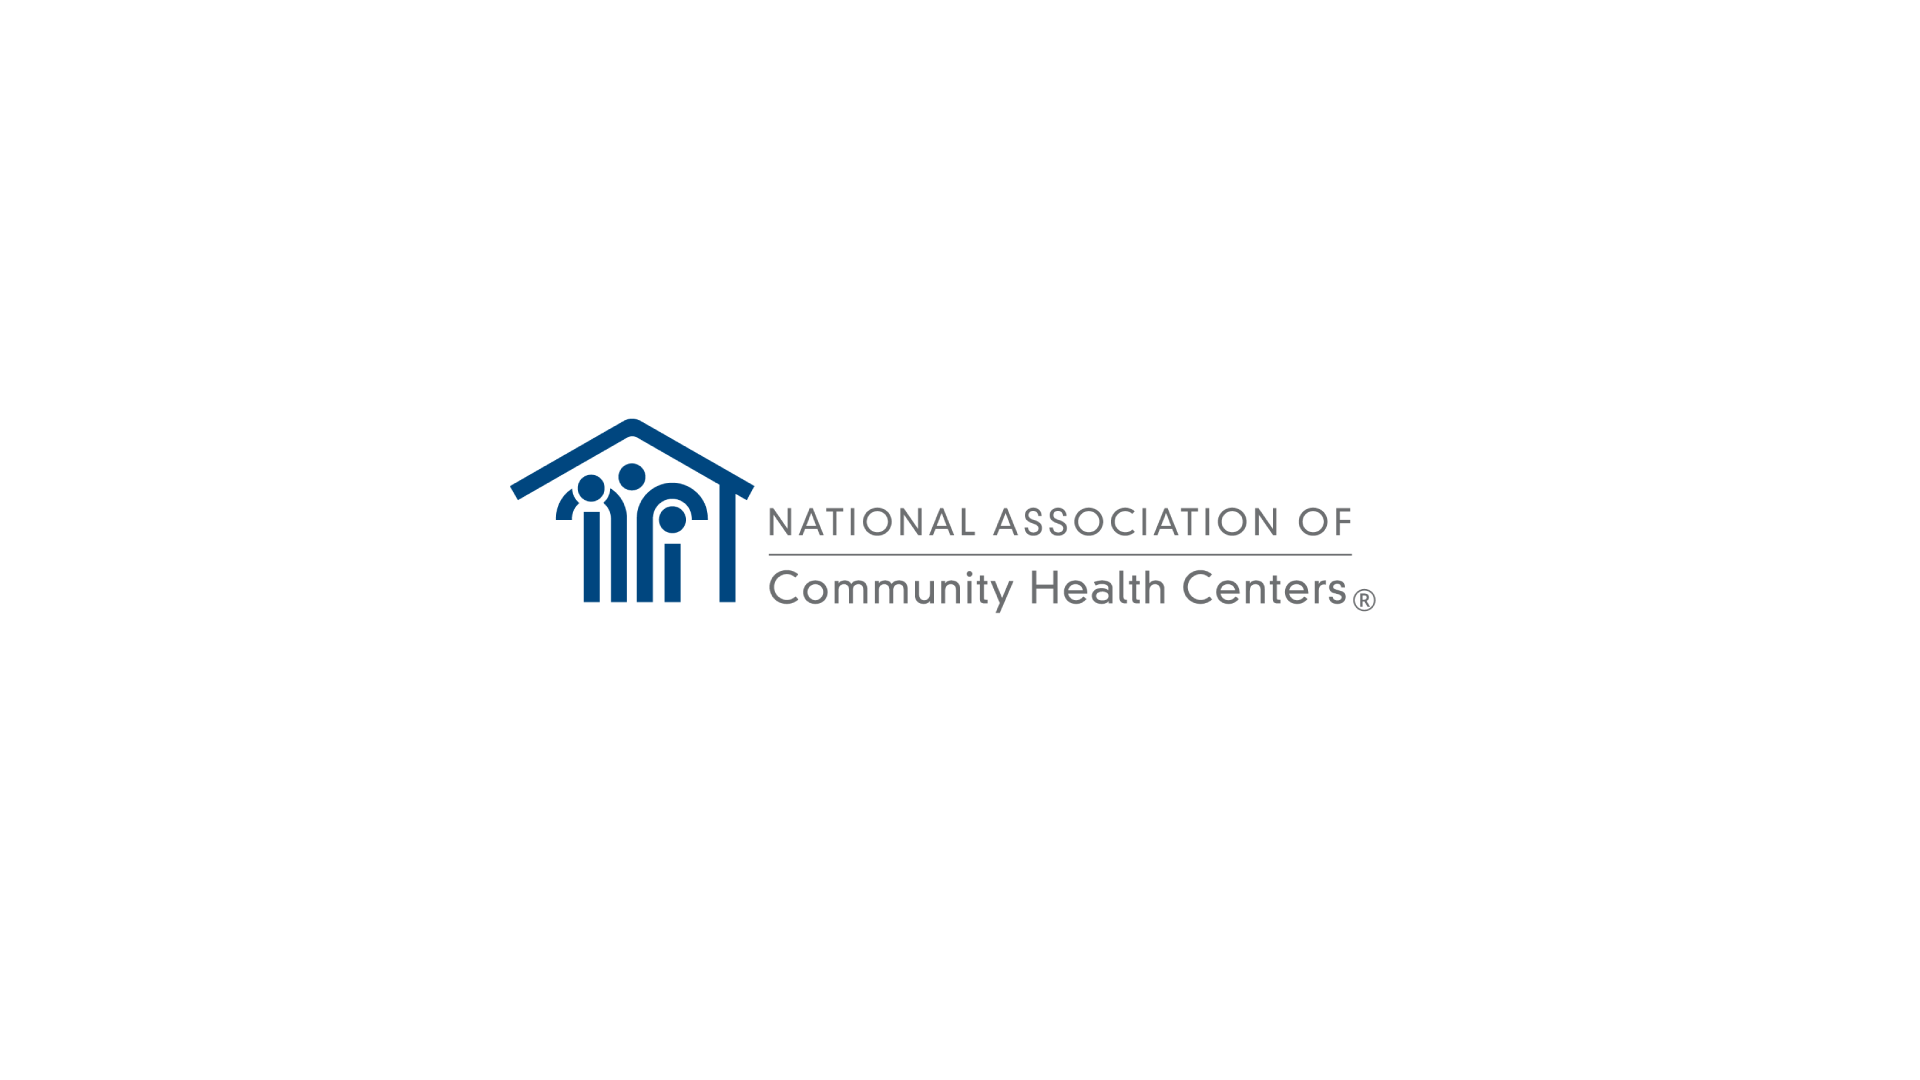 Logo of the National Association of Community Health Centers